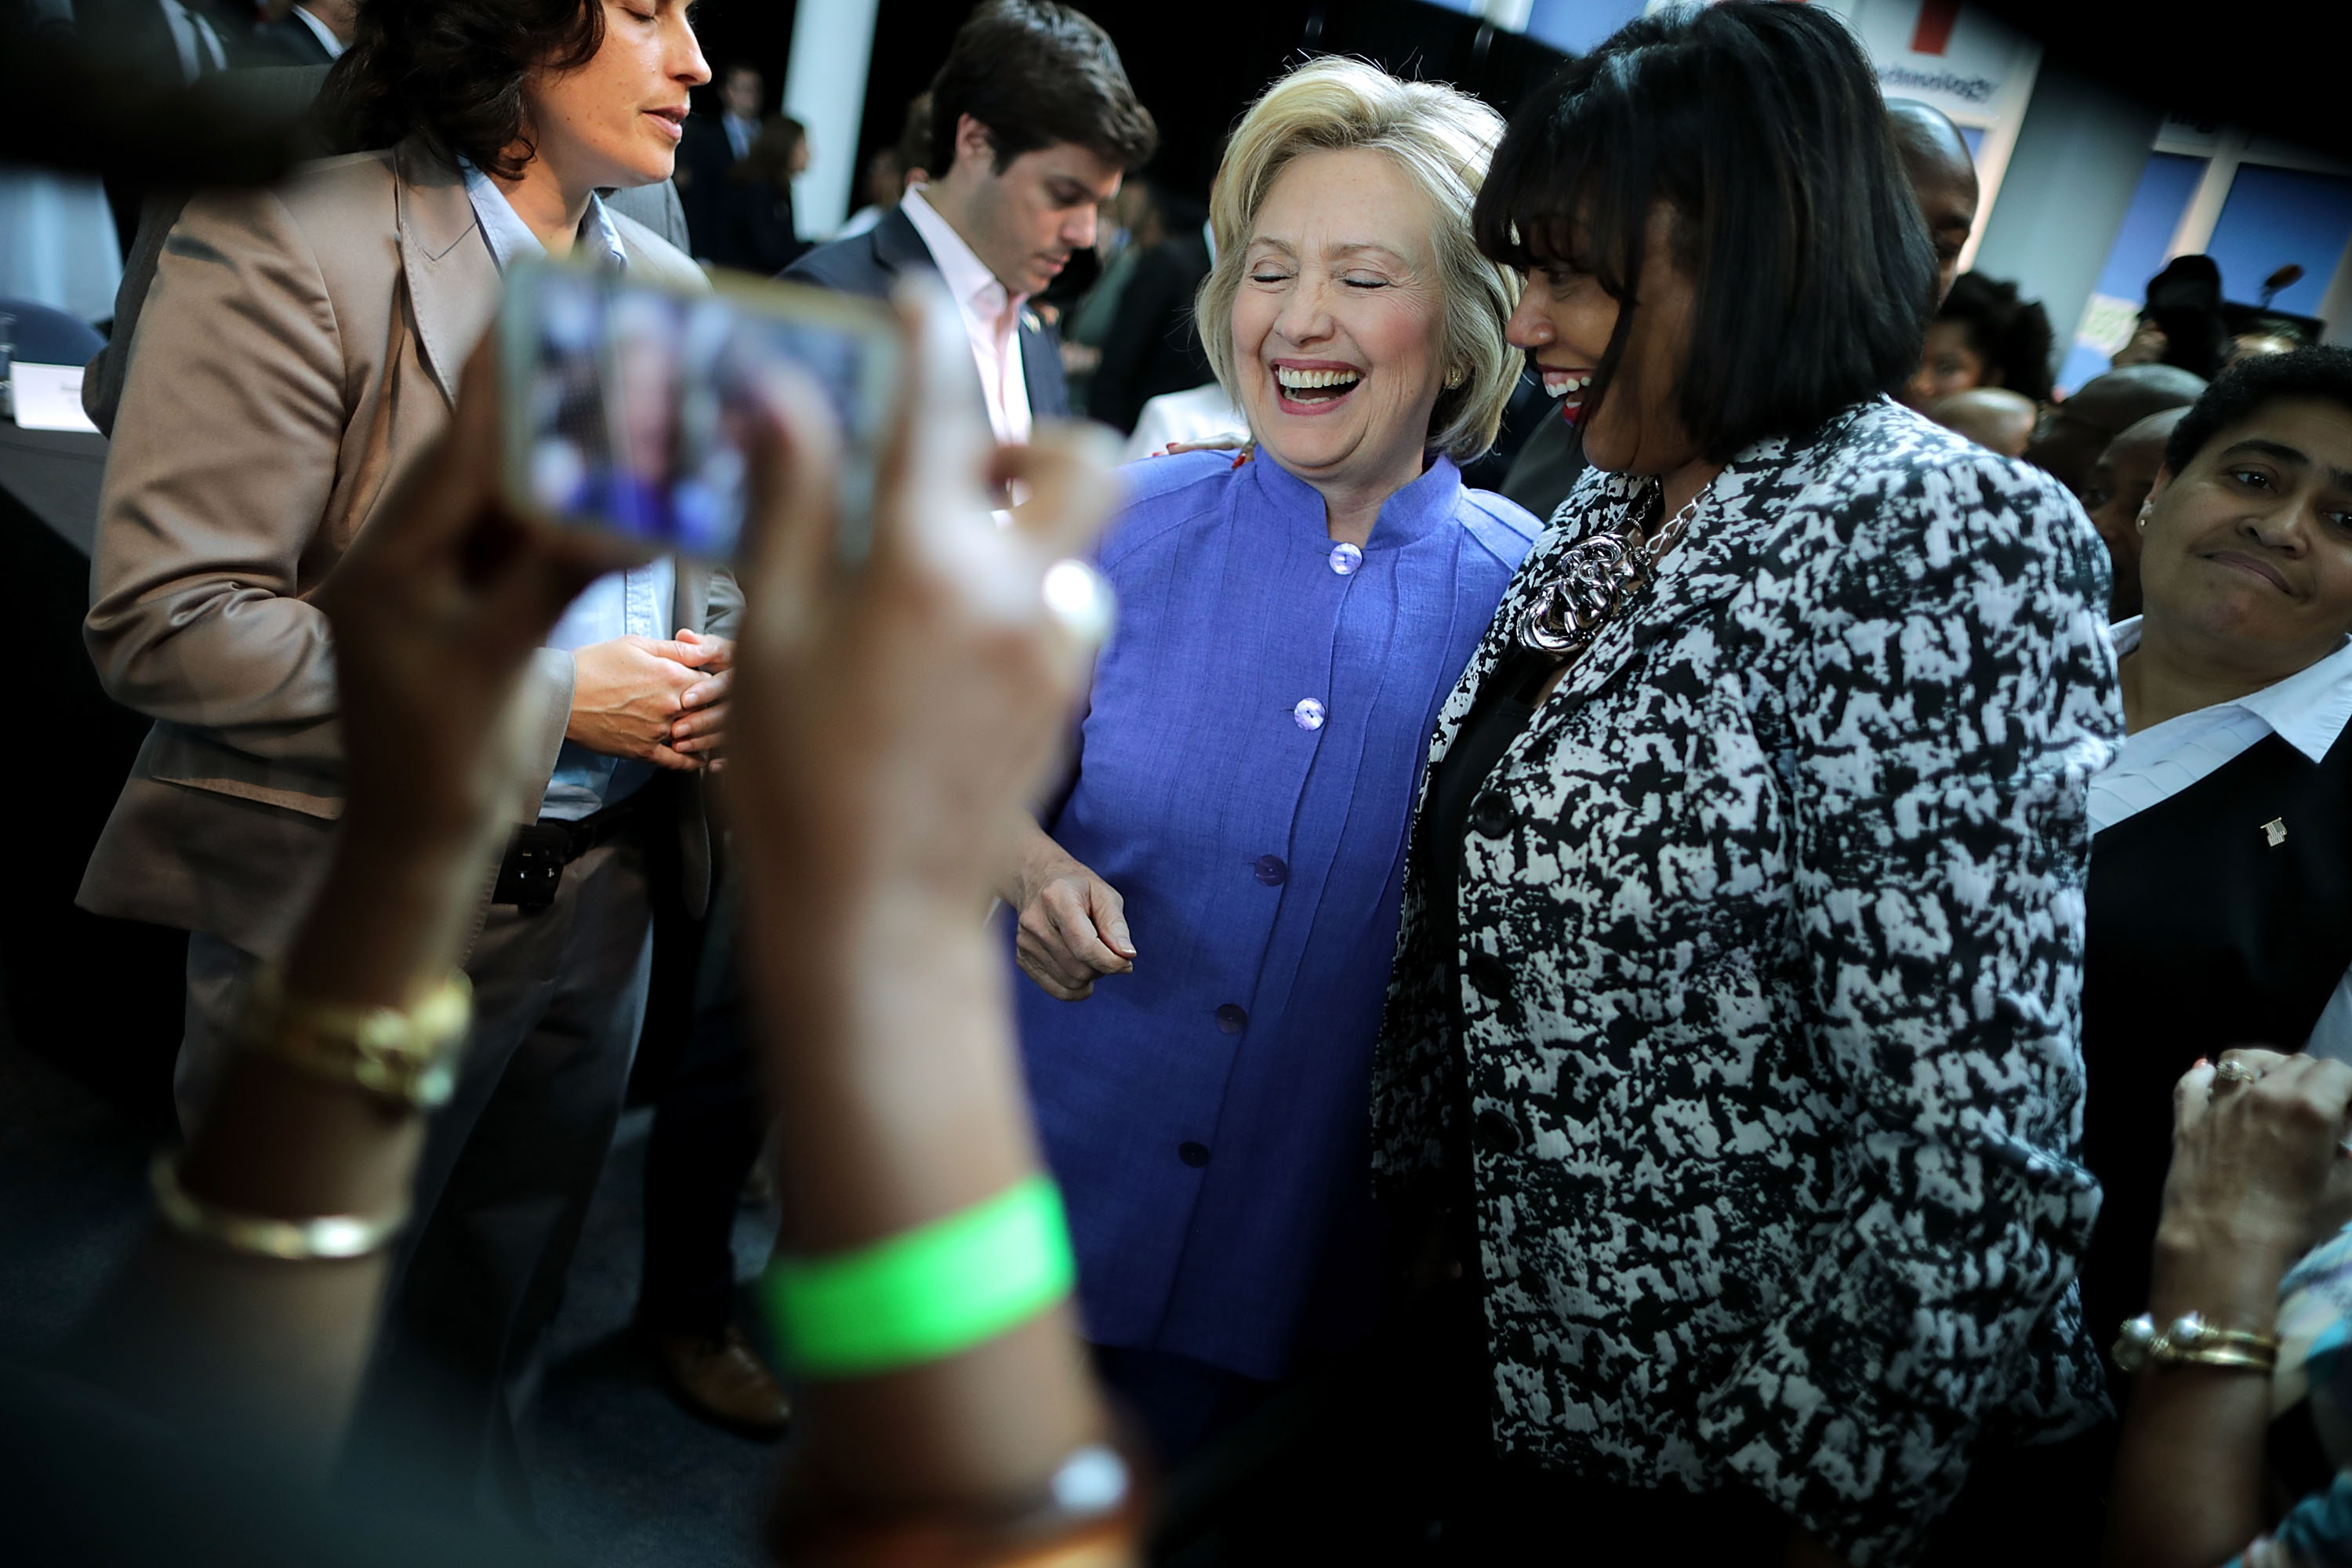 Democratic presidential candidate Hillary Clinton poses for photographs with supporters after participating in a round table conversation on national security at the Virginia Air and Space Center June 15, 2016 in Hampton, Virginia. Following the nation's final presidential primary in the District of Columbia on Tuesday, it is clear that Clinton has won enough votes to be her party's standard bearer in this fall's election.